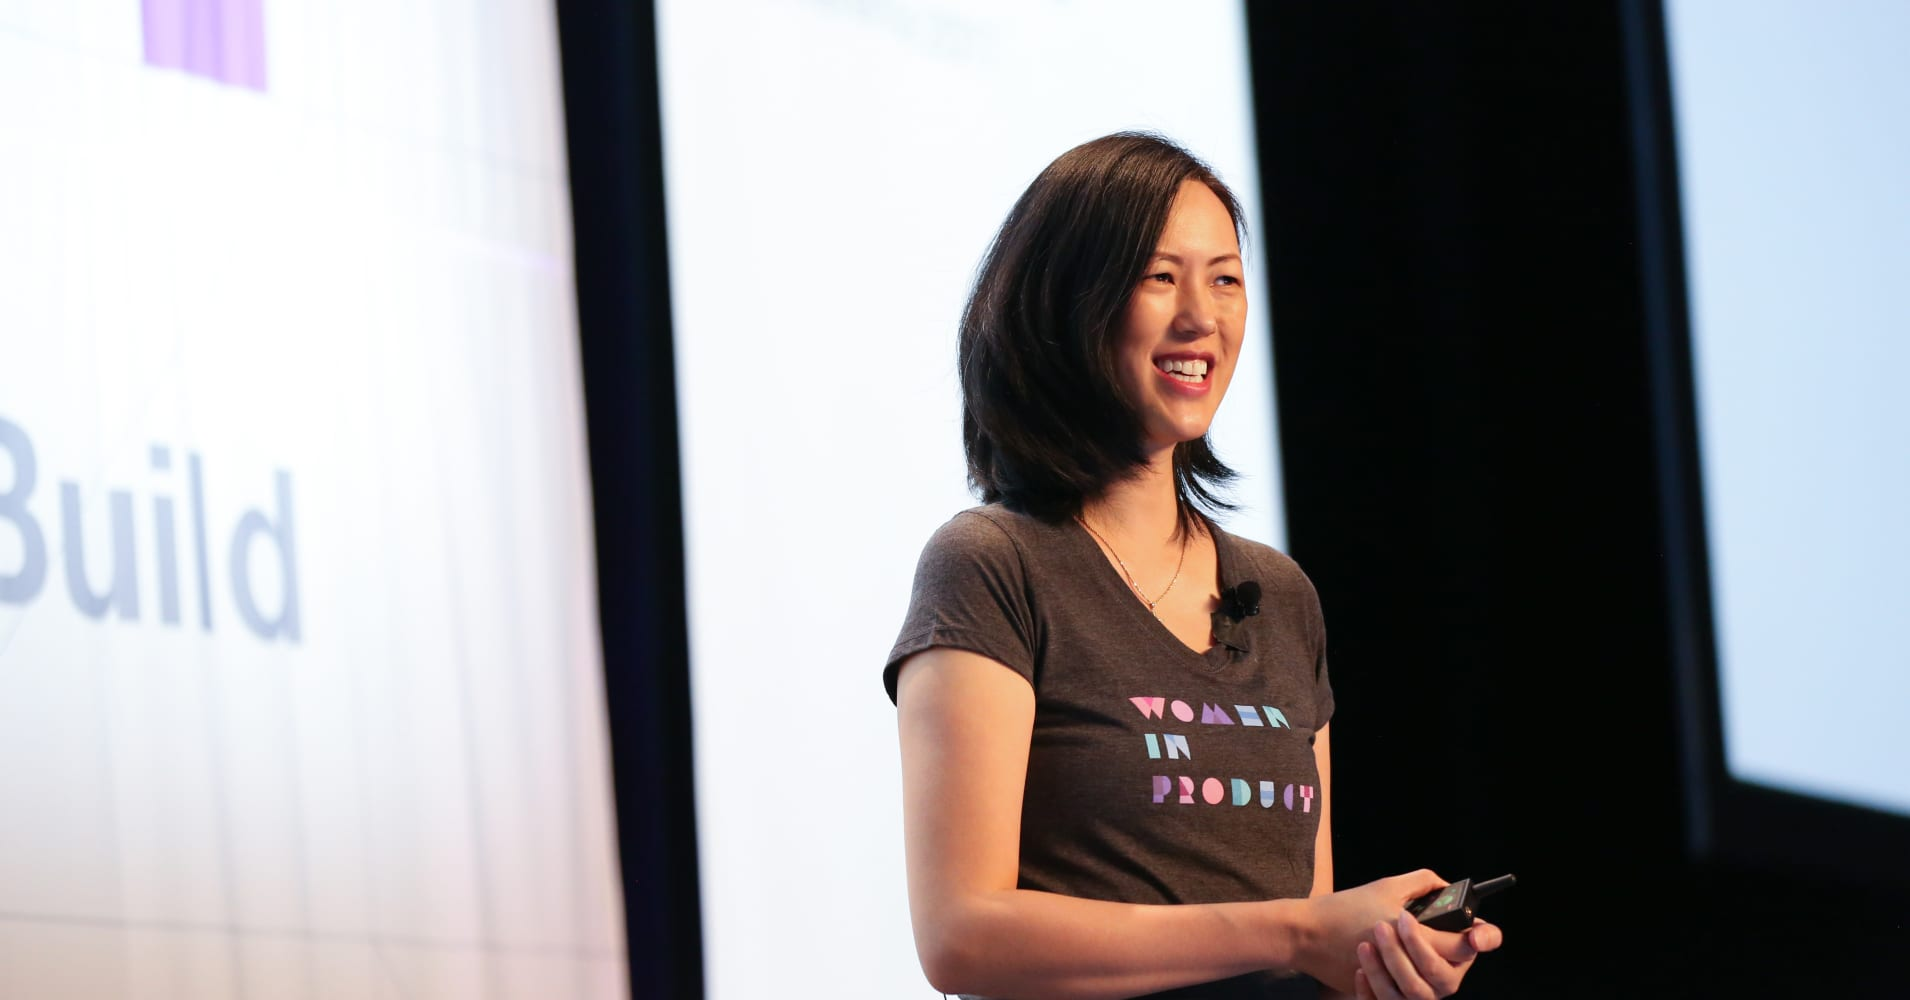 VP of Facebook Marketplace Deb Liu speaks at a Women in Product conference.